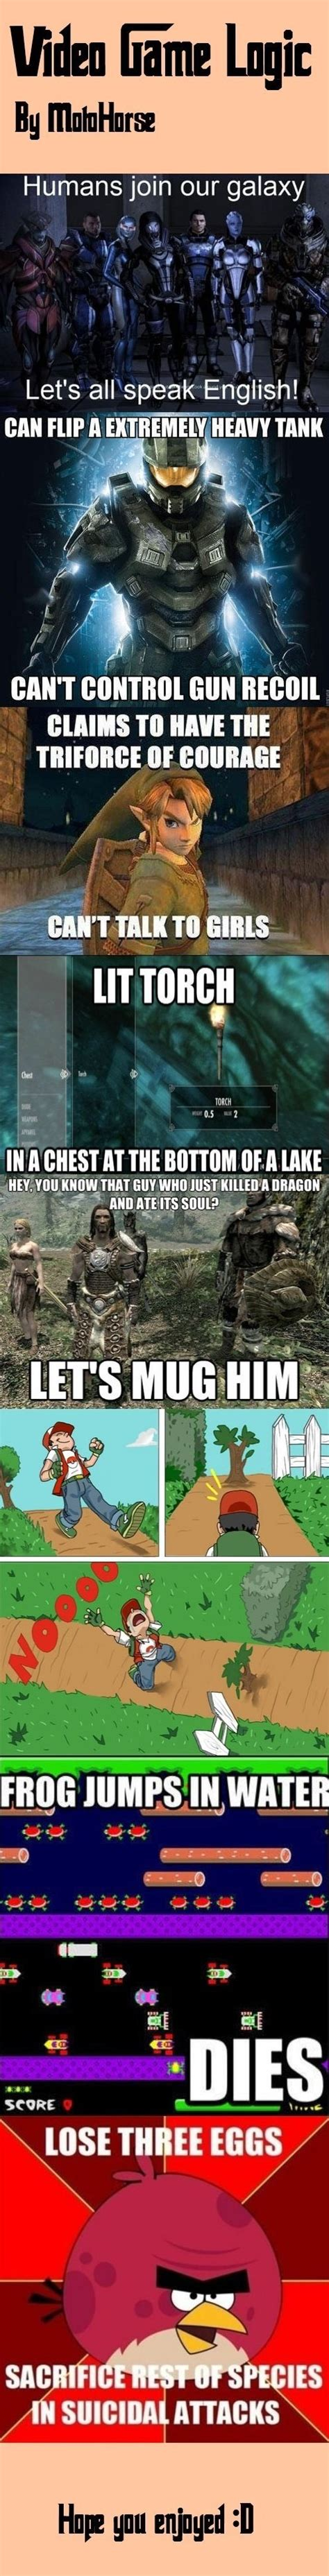 Game Logic Meme - funniest video game memes 28 images funny memes about video games memes funny video game